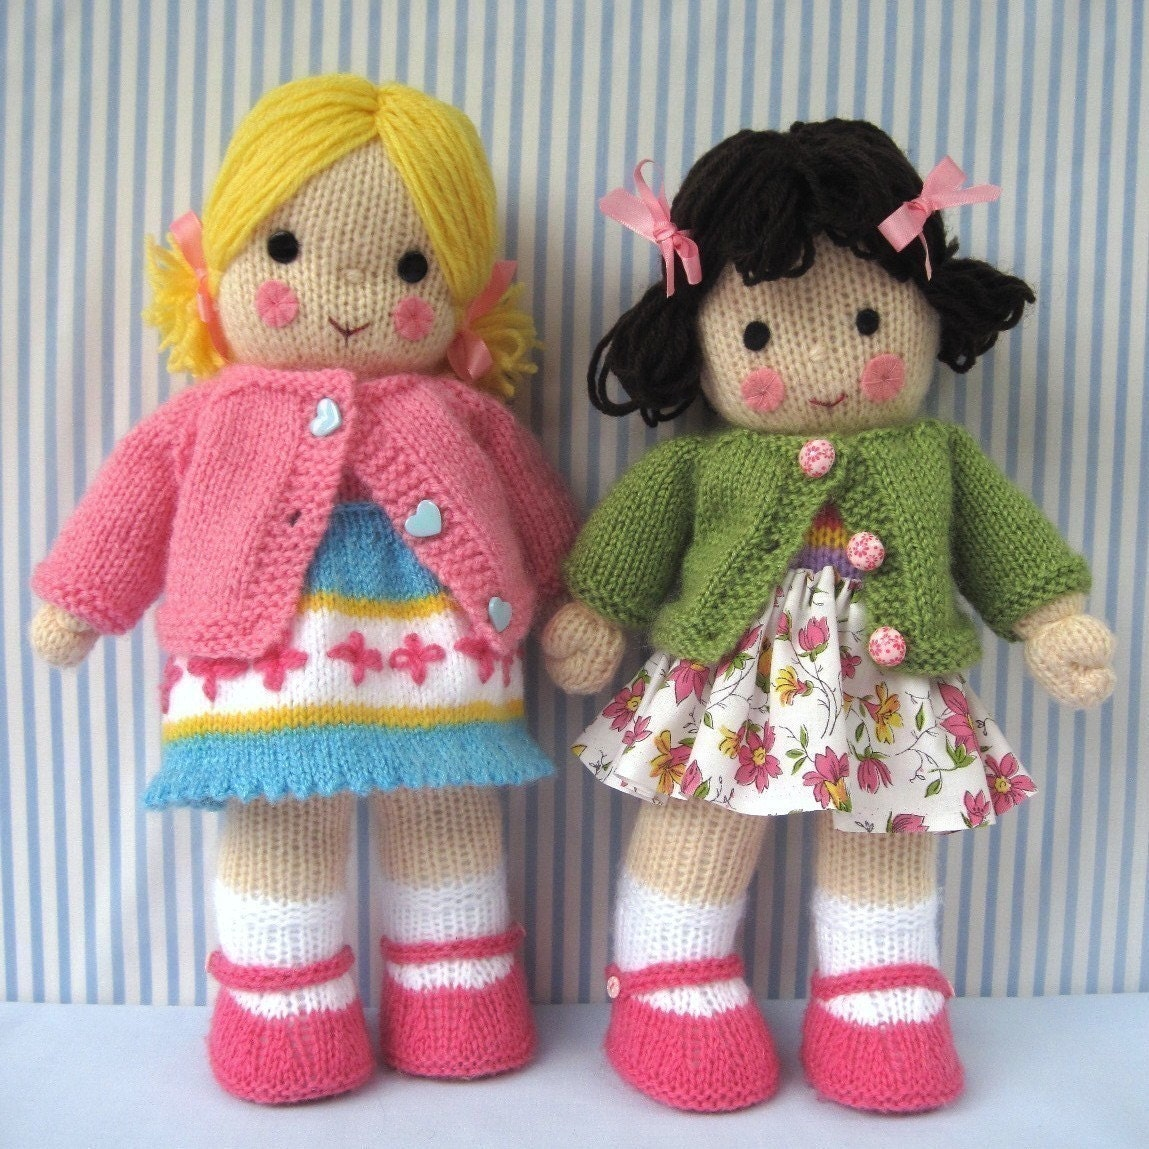 POLLY and KATE knitted toy dolls PDF email knitting